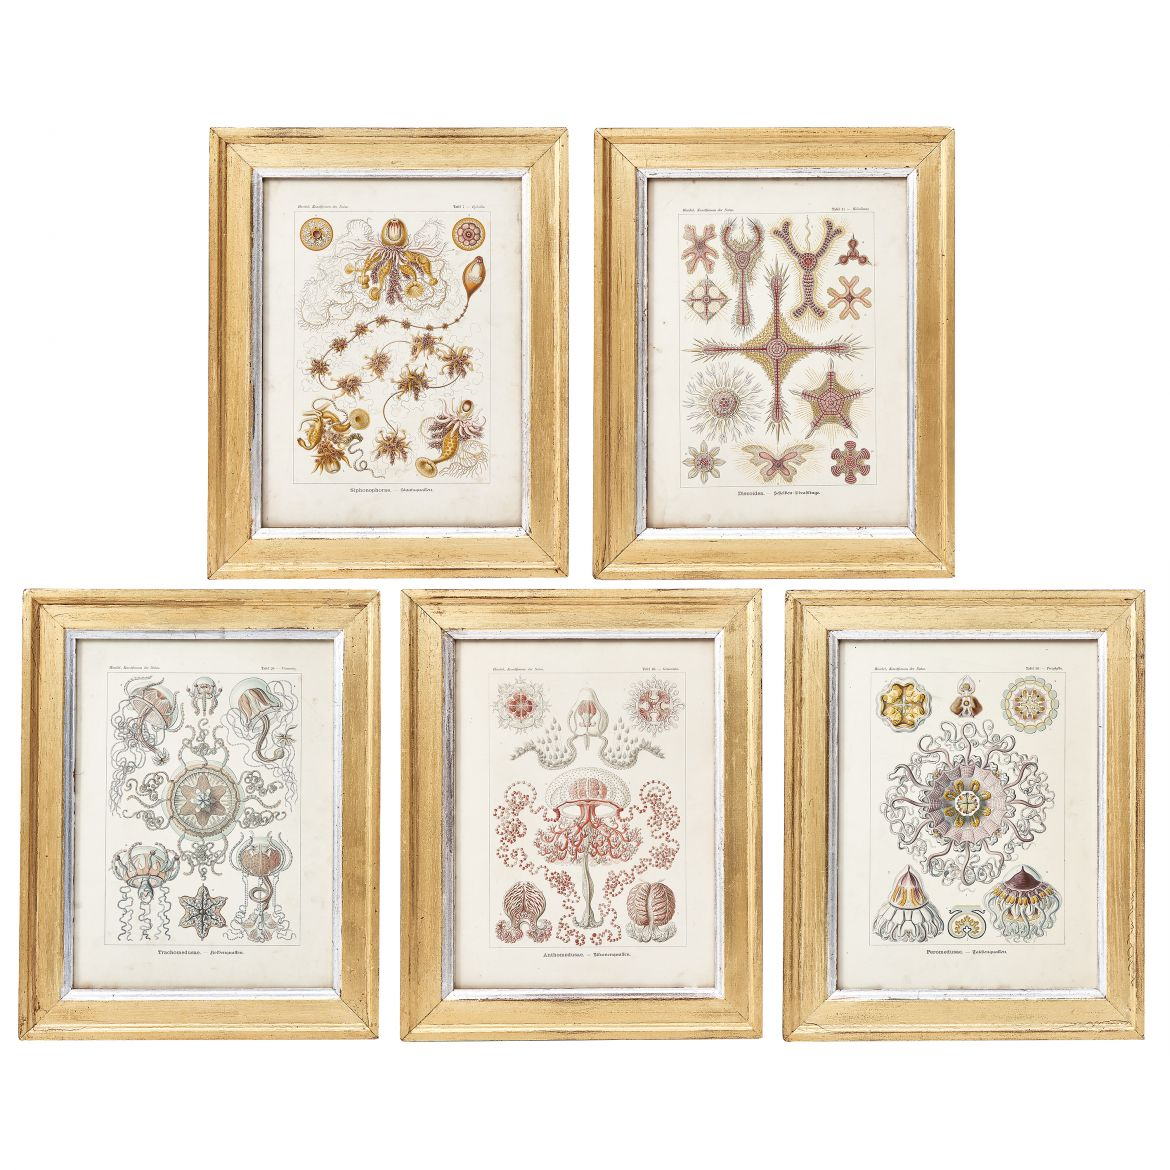 German Art Form in Nature Prints